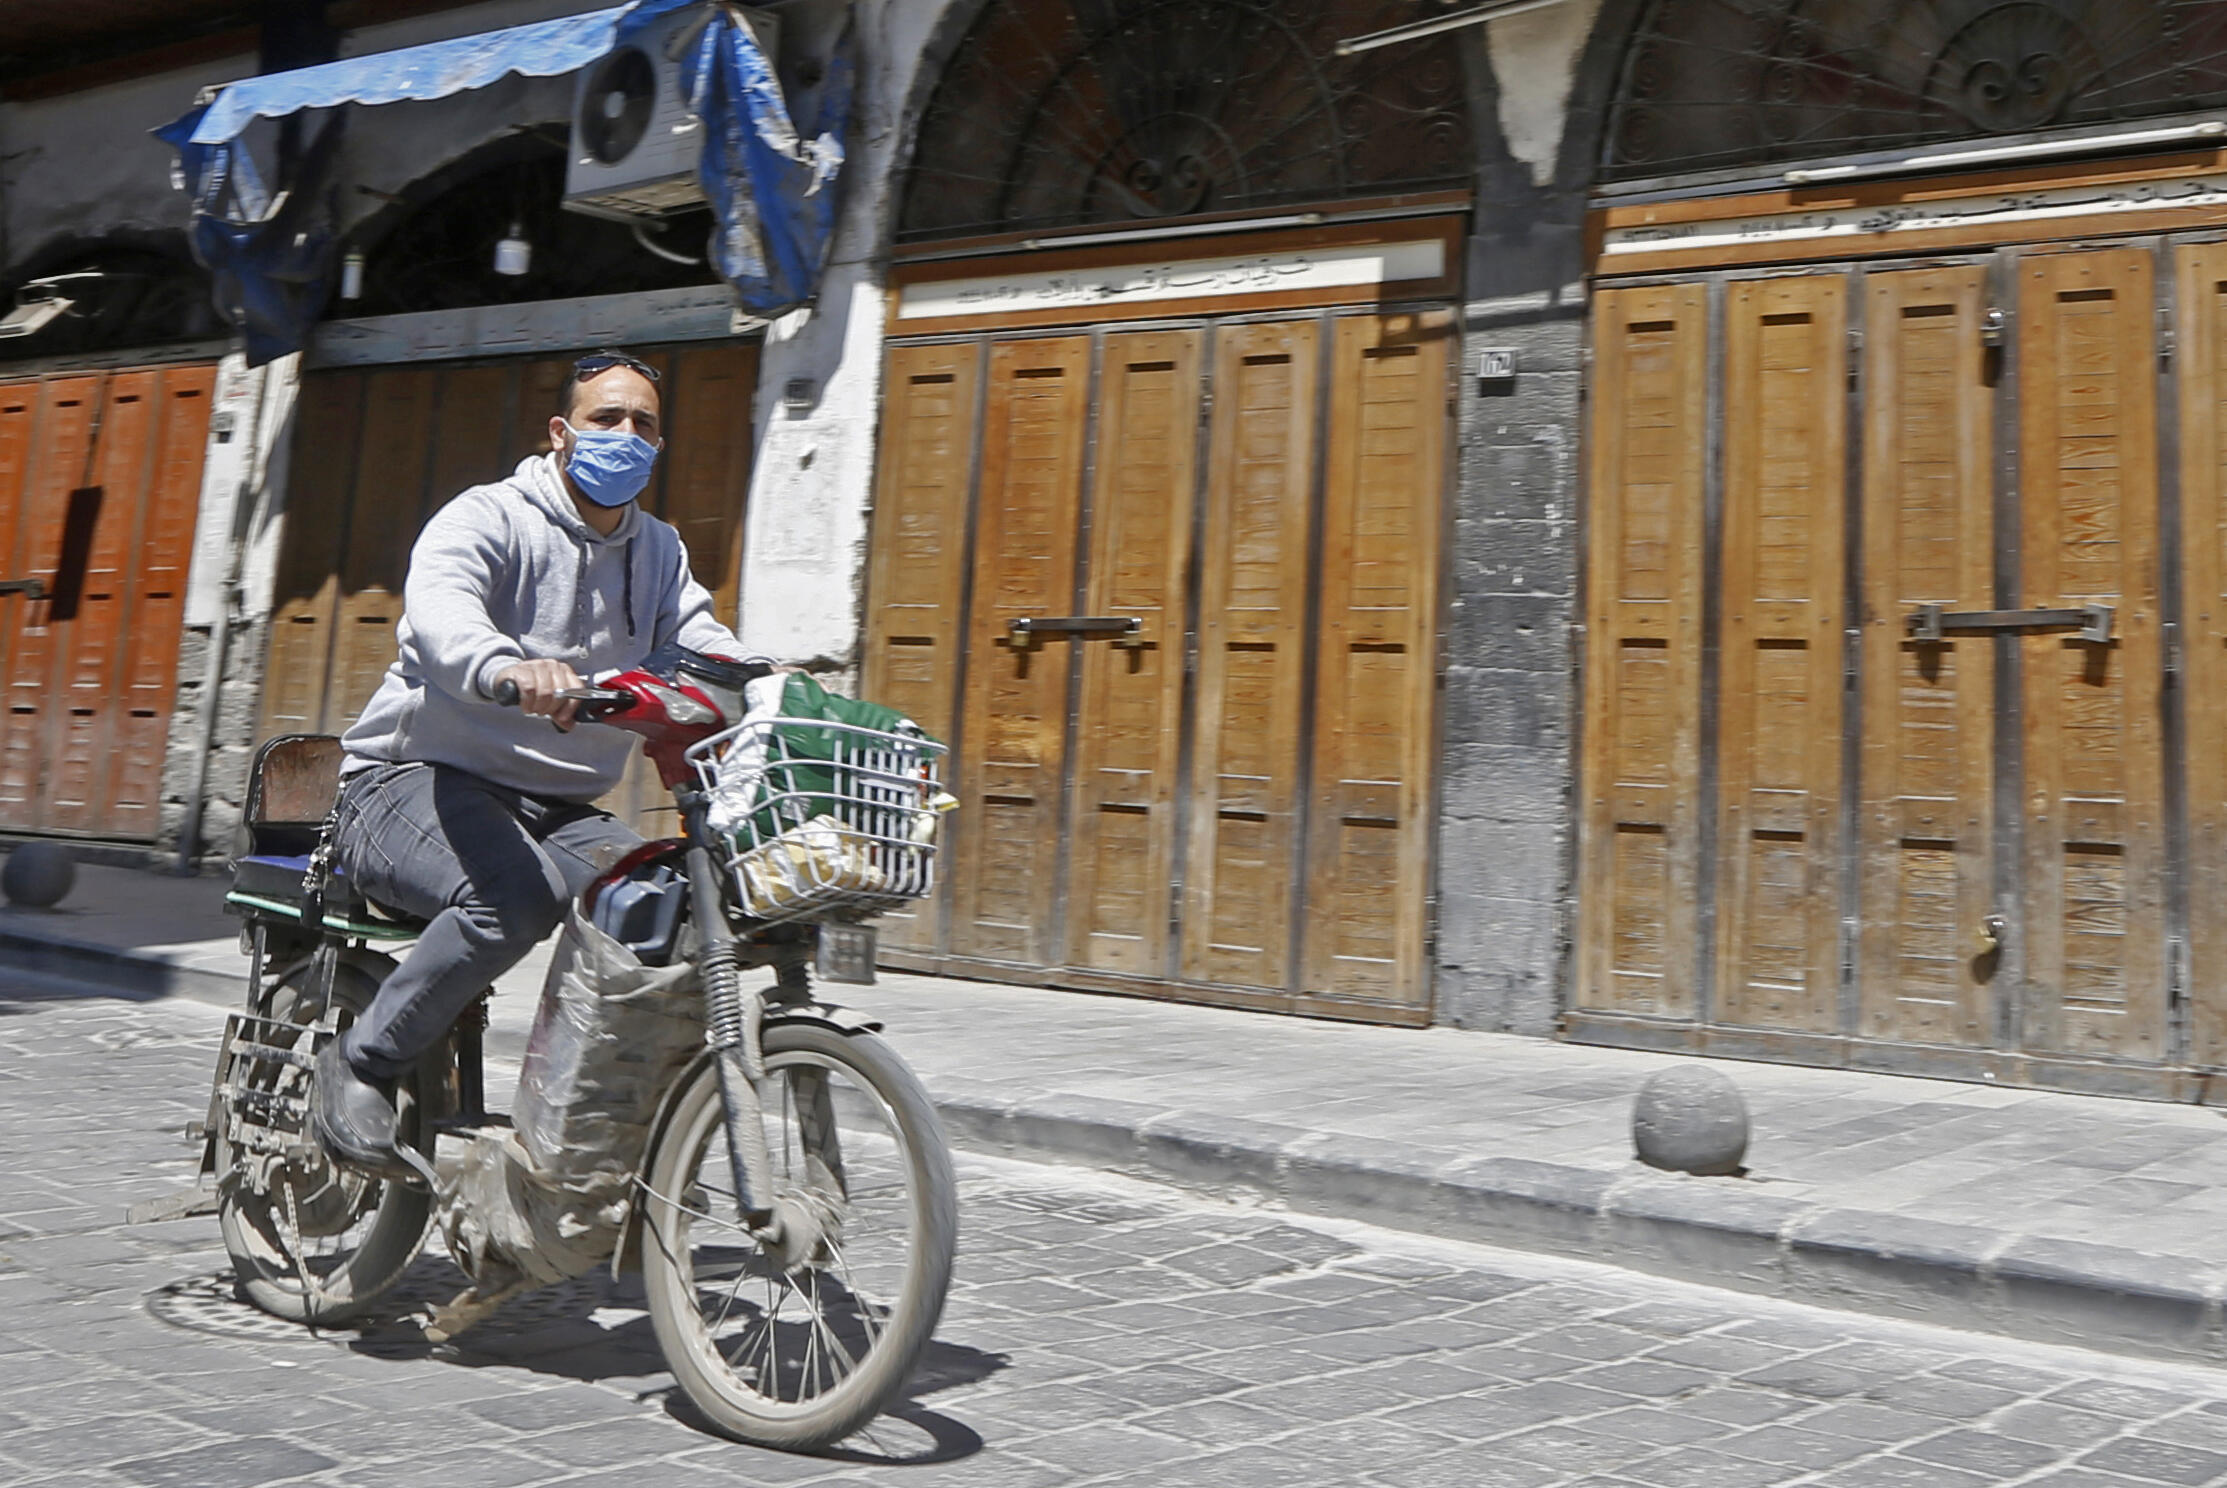 A Syrian man, wearing a protective face mask to protect against the coronavirus (COVID-19) pandemic, rides his motorcycle down a street near the Old City of the capital Damascus on April 14, 2020.